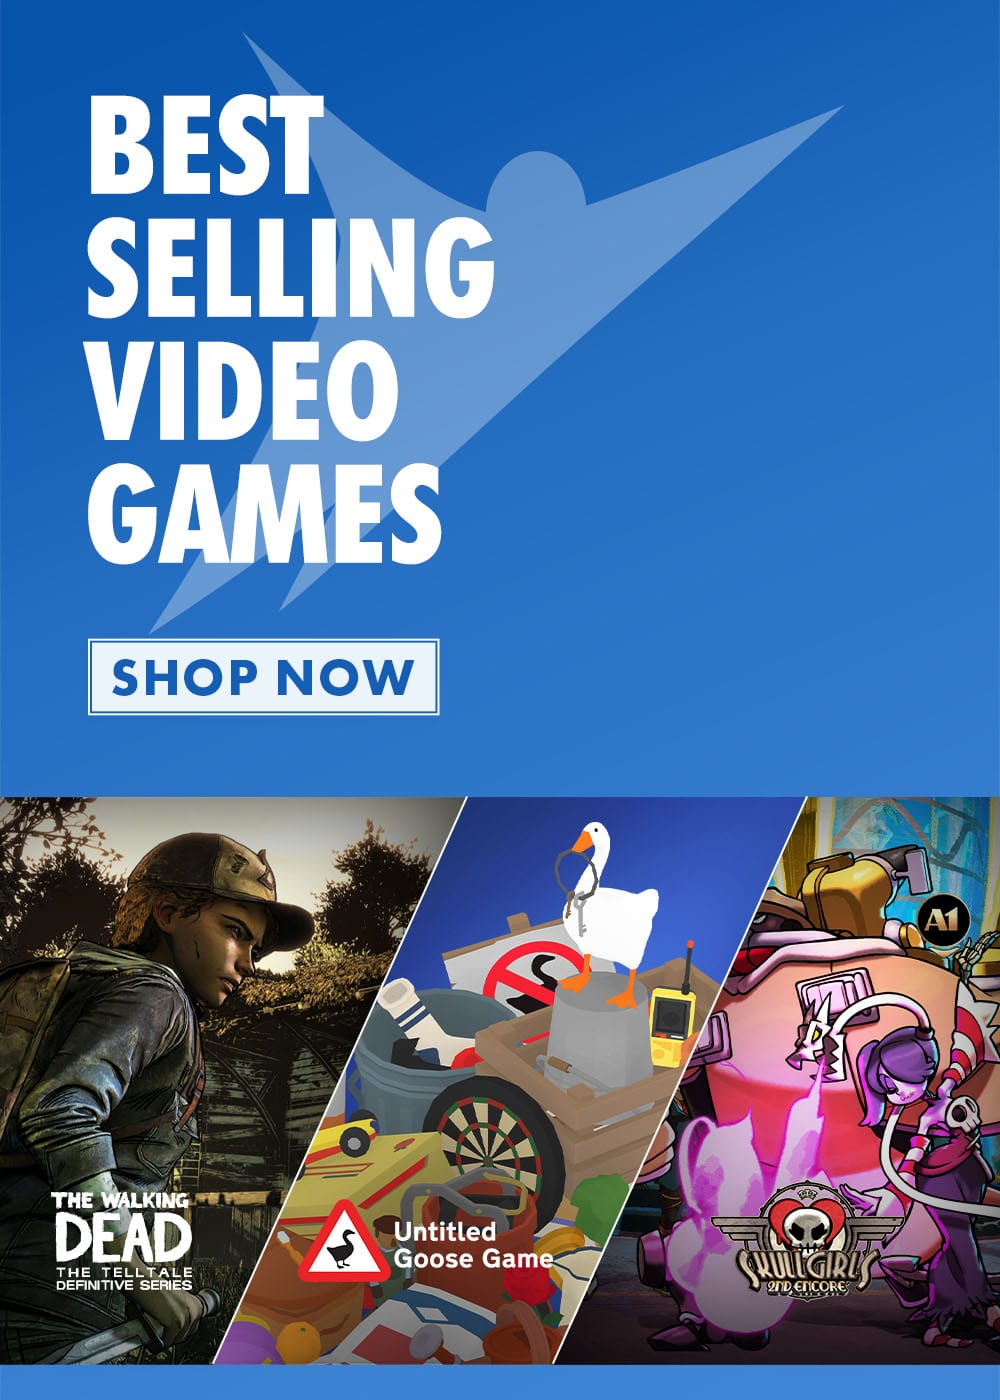 Best Selling Video Games